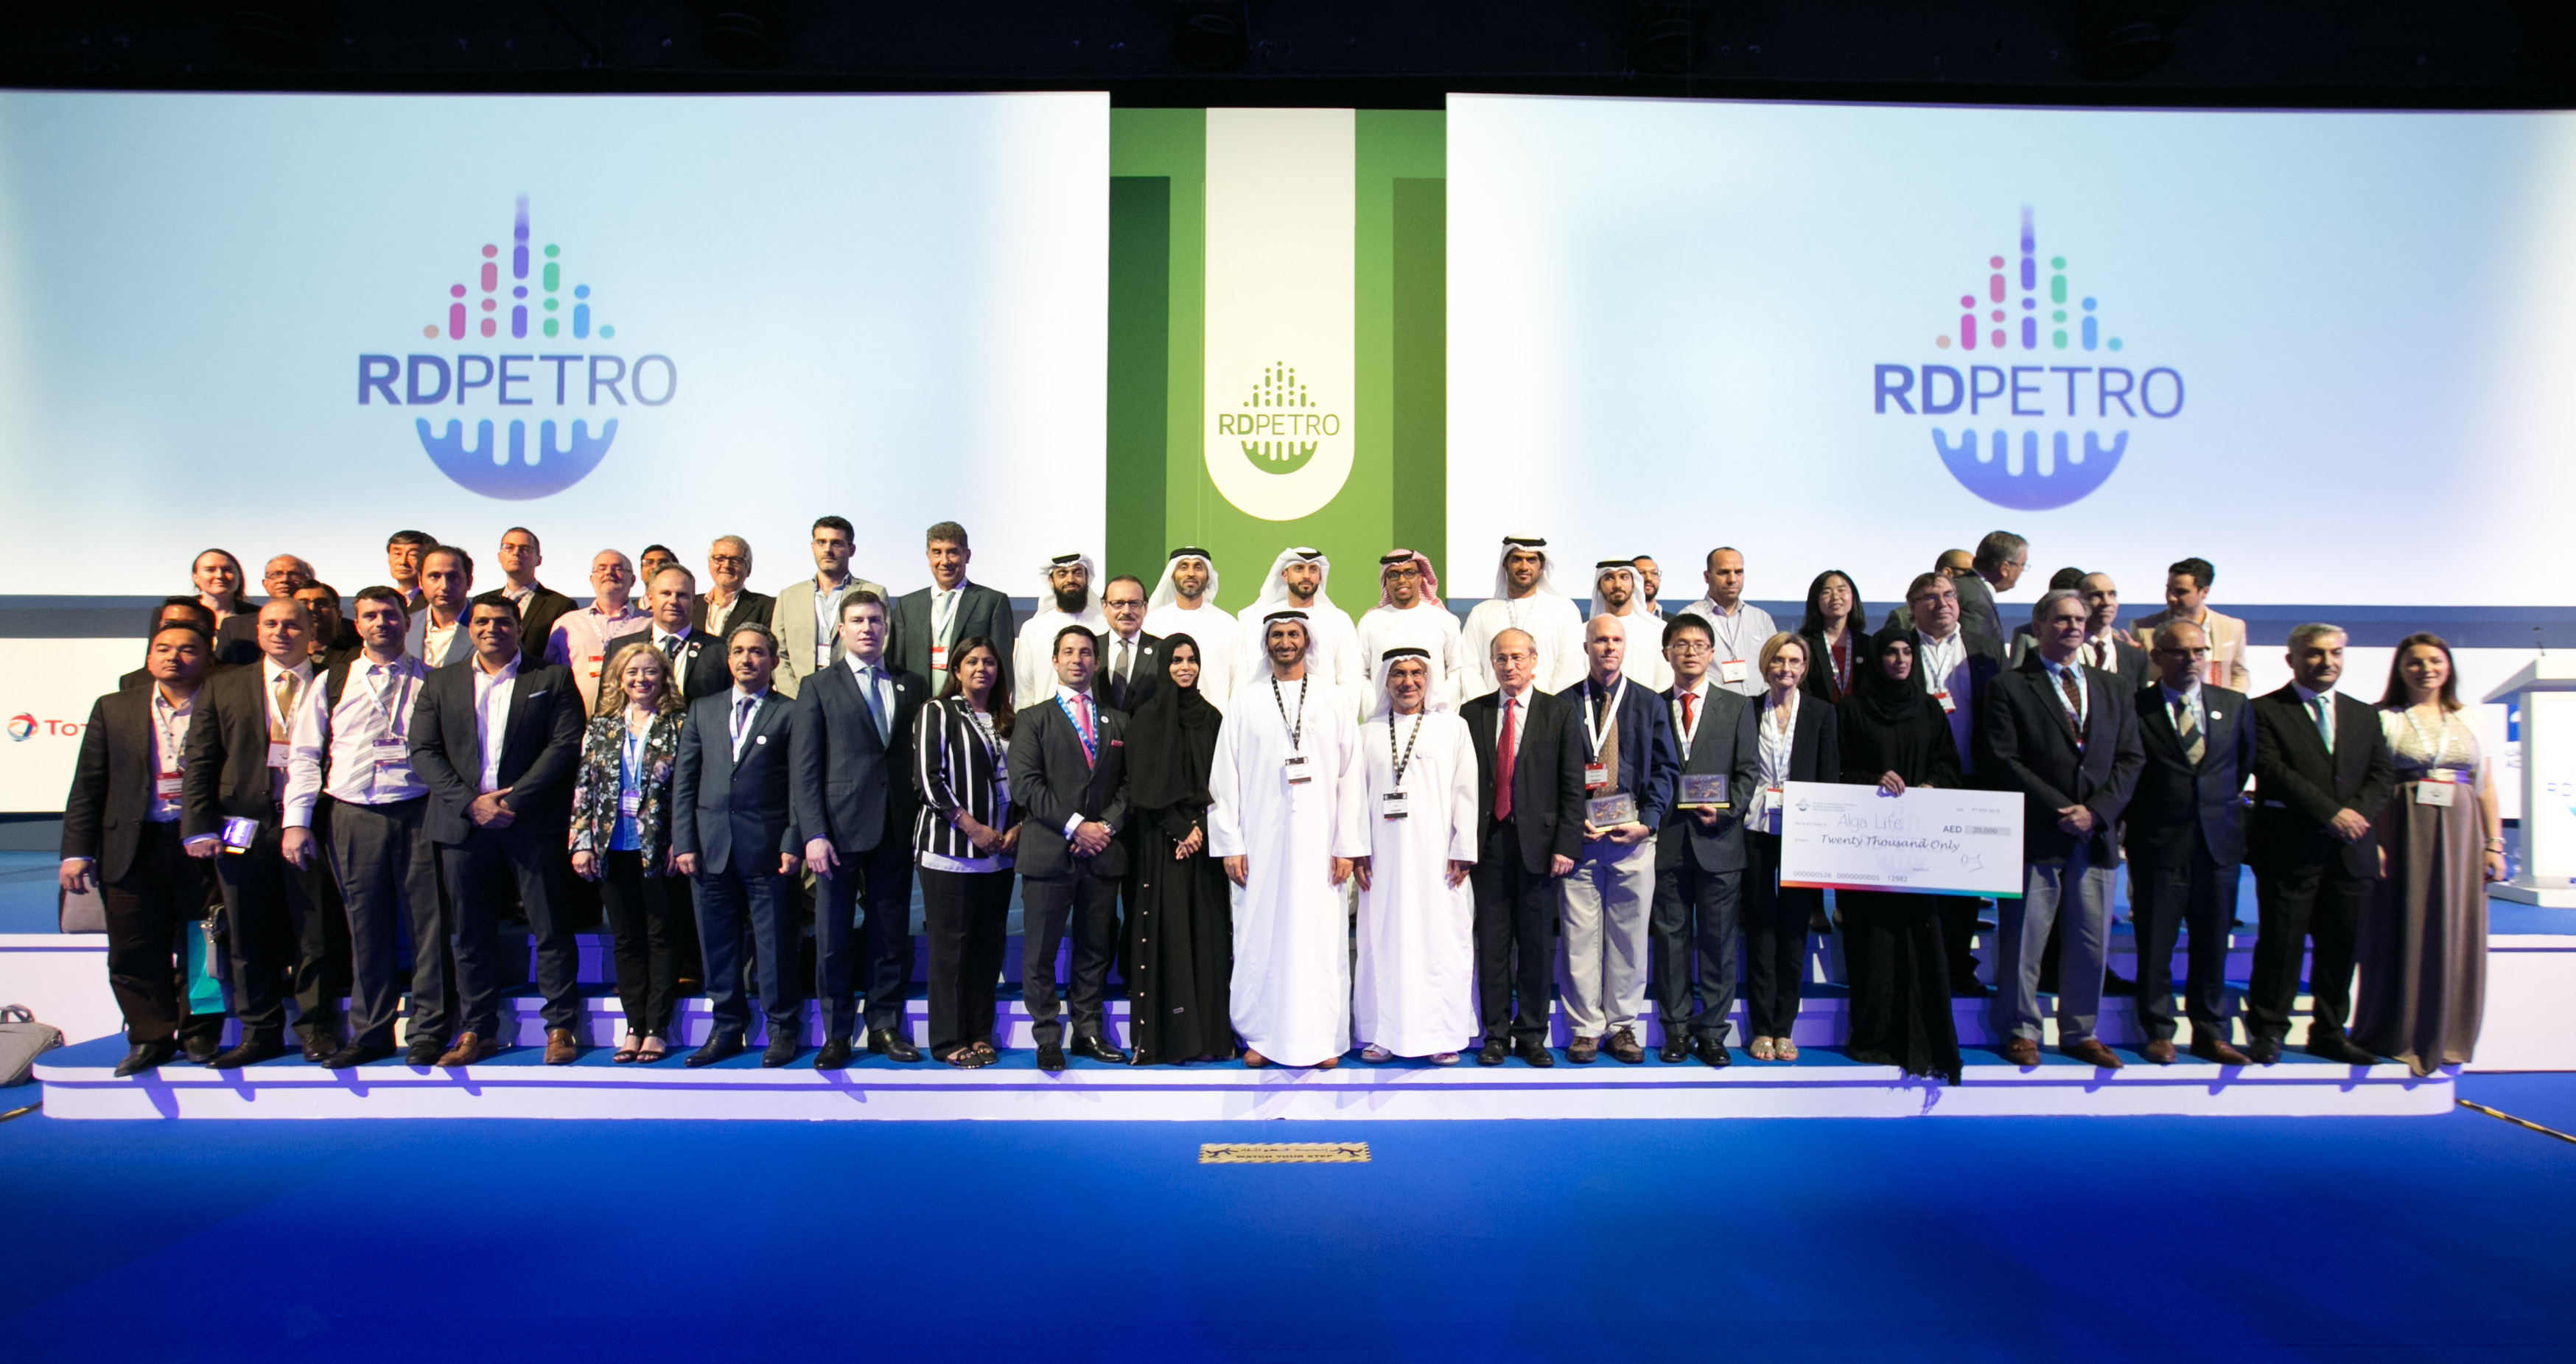 RDPETRO 2018: Research and Development Petroleum Conference and Exhibition